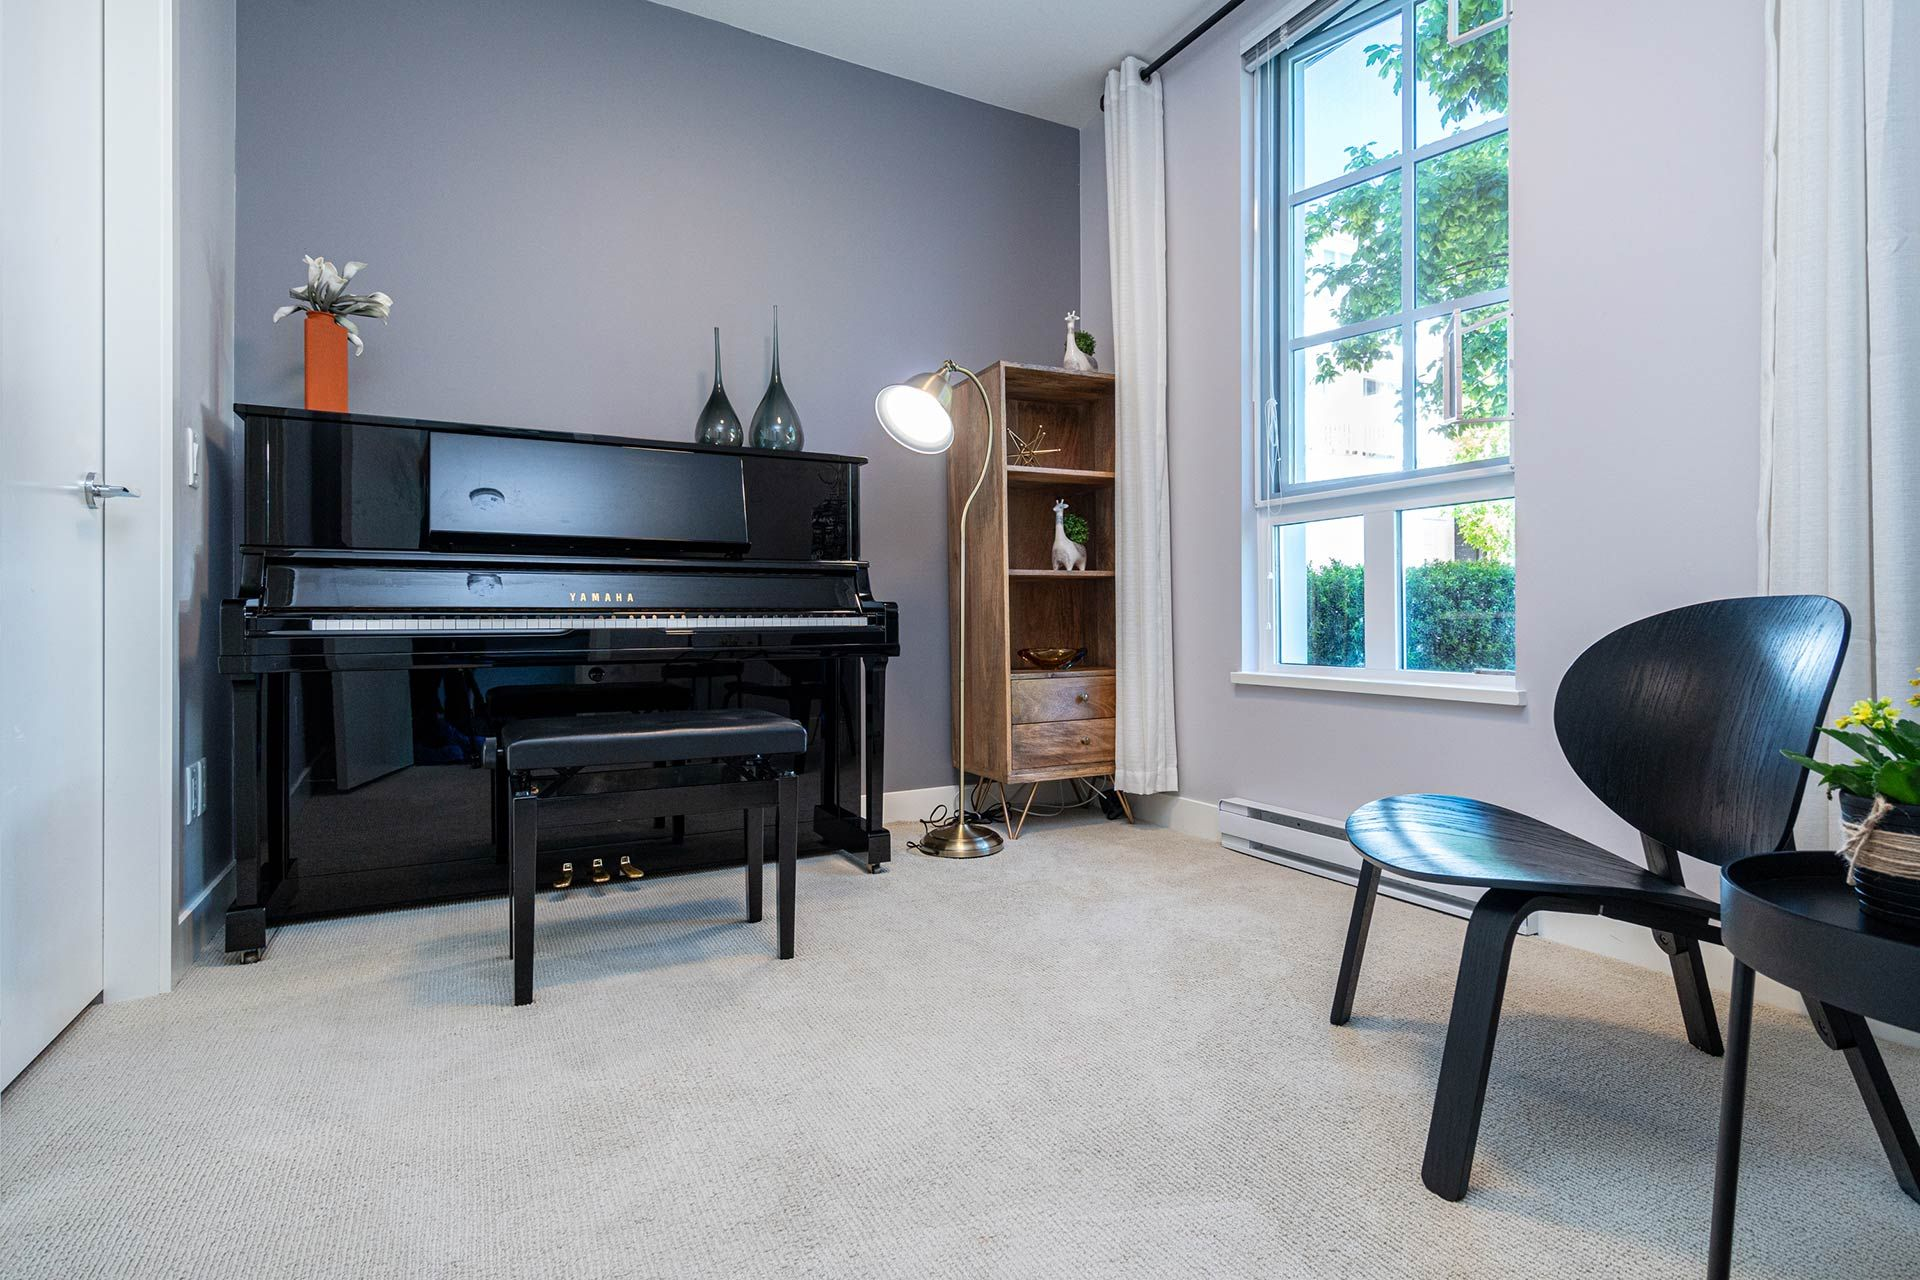 """Photo 35: Photos: 154 548 FOSTER Avenue in Coquitlam: Coquitlam West Townhouse for sale in """"BLACK + WHITE"""" : MLS®# R2587208"""